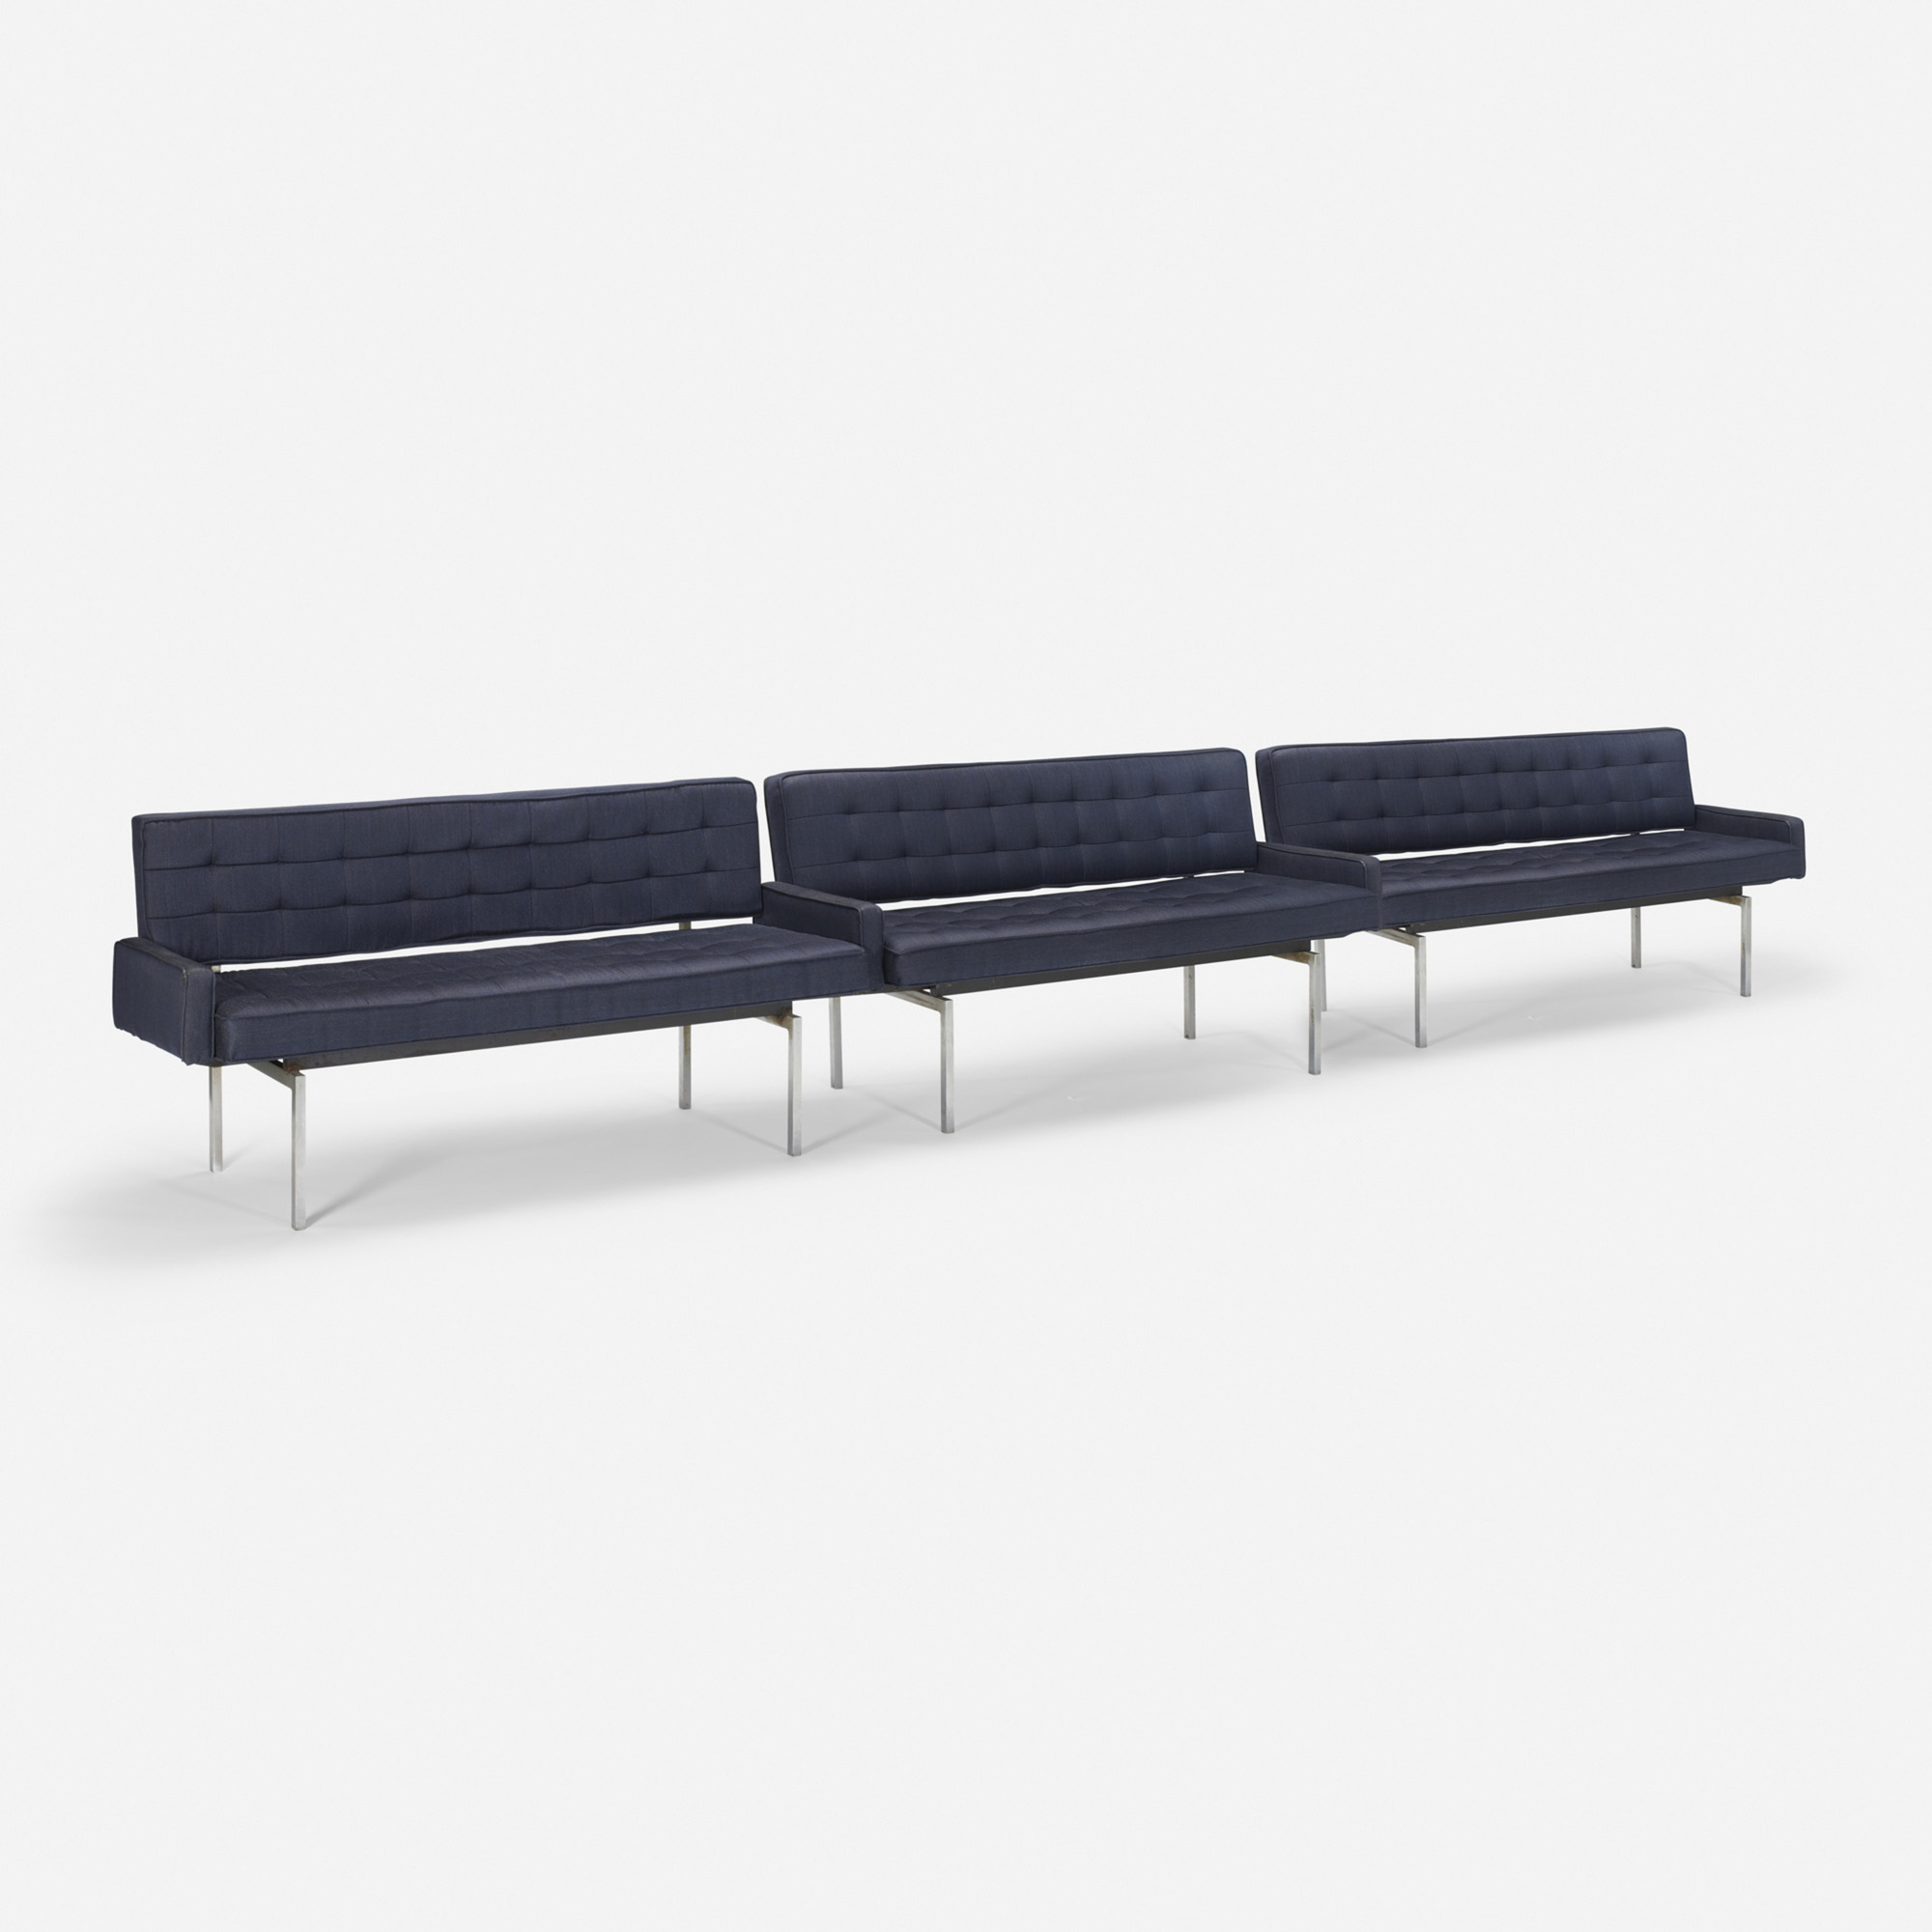 514: Philip Johnson Associates / Banquettes 39, 49 and 59 from the Pool Room, set of three (1 of 1)